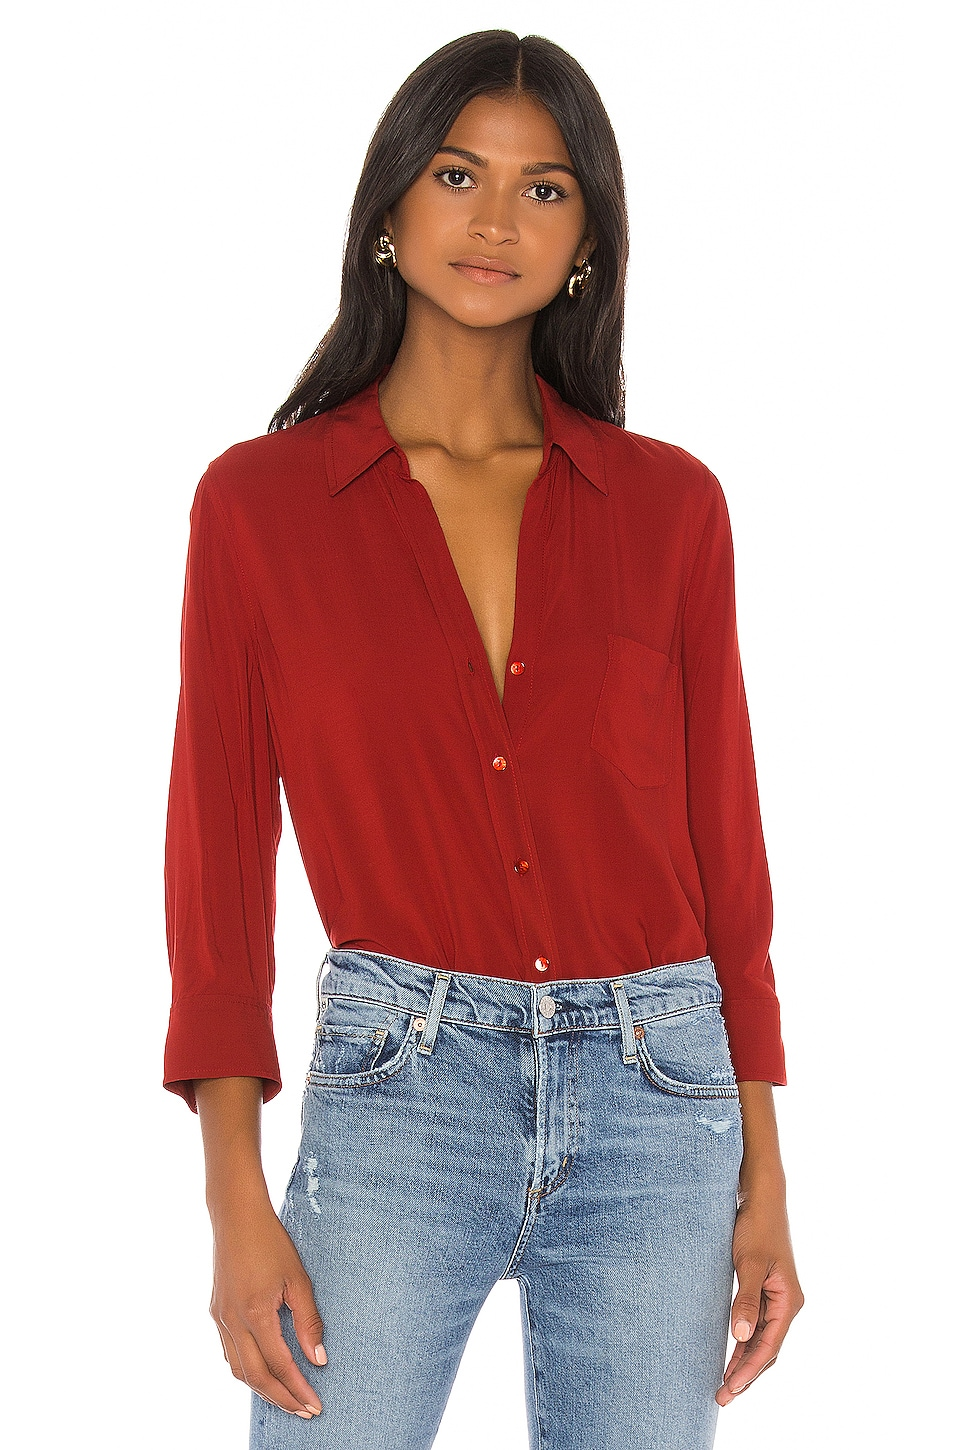 L'AGENCE Ryan 3/4 Sleeve Blouse en Redstone